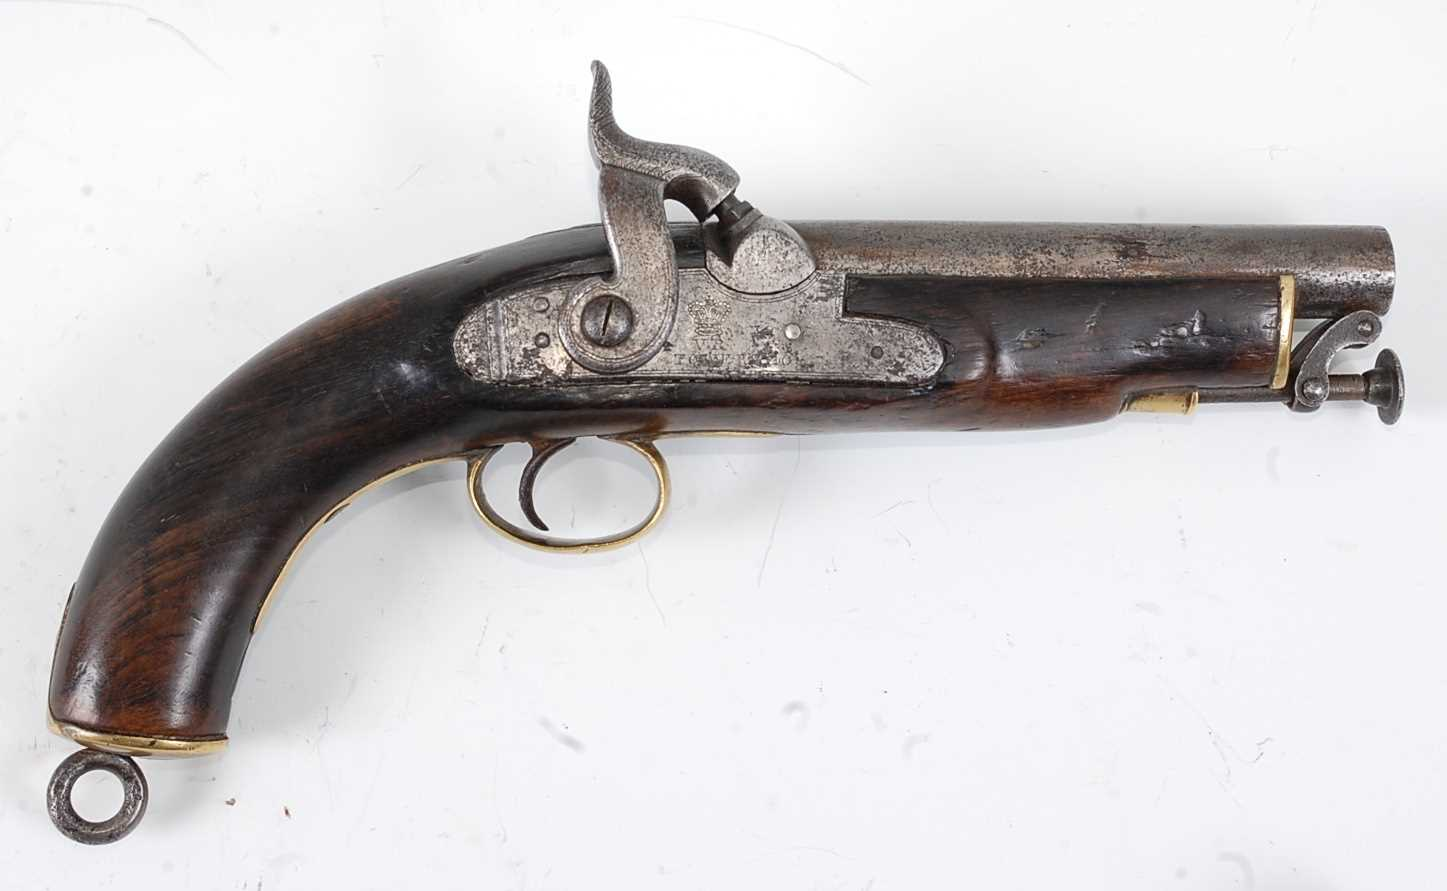 A 19th century Sea Service percussion belt pistol, the 15cm barrel with various inspection stamps